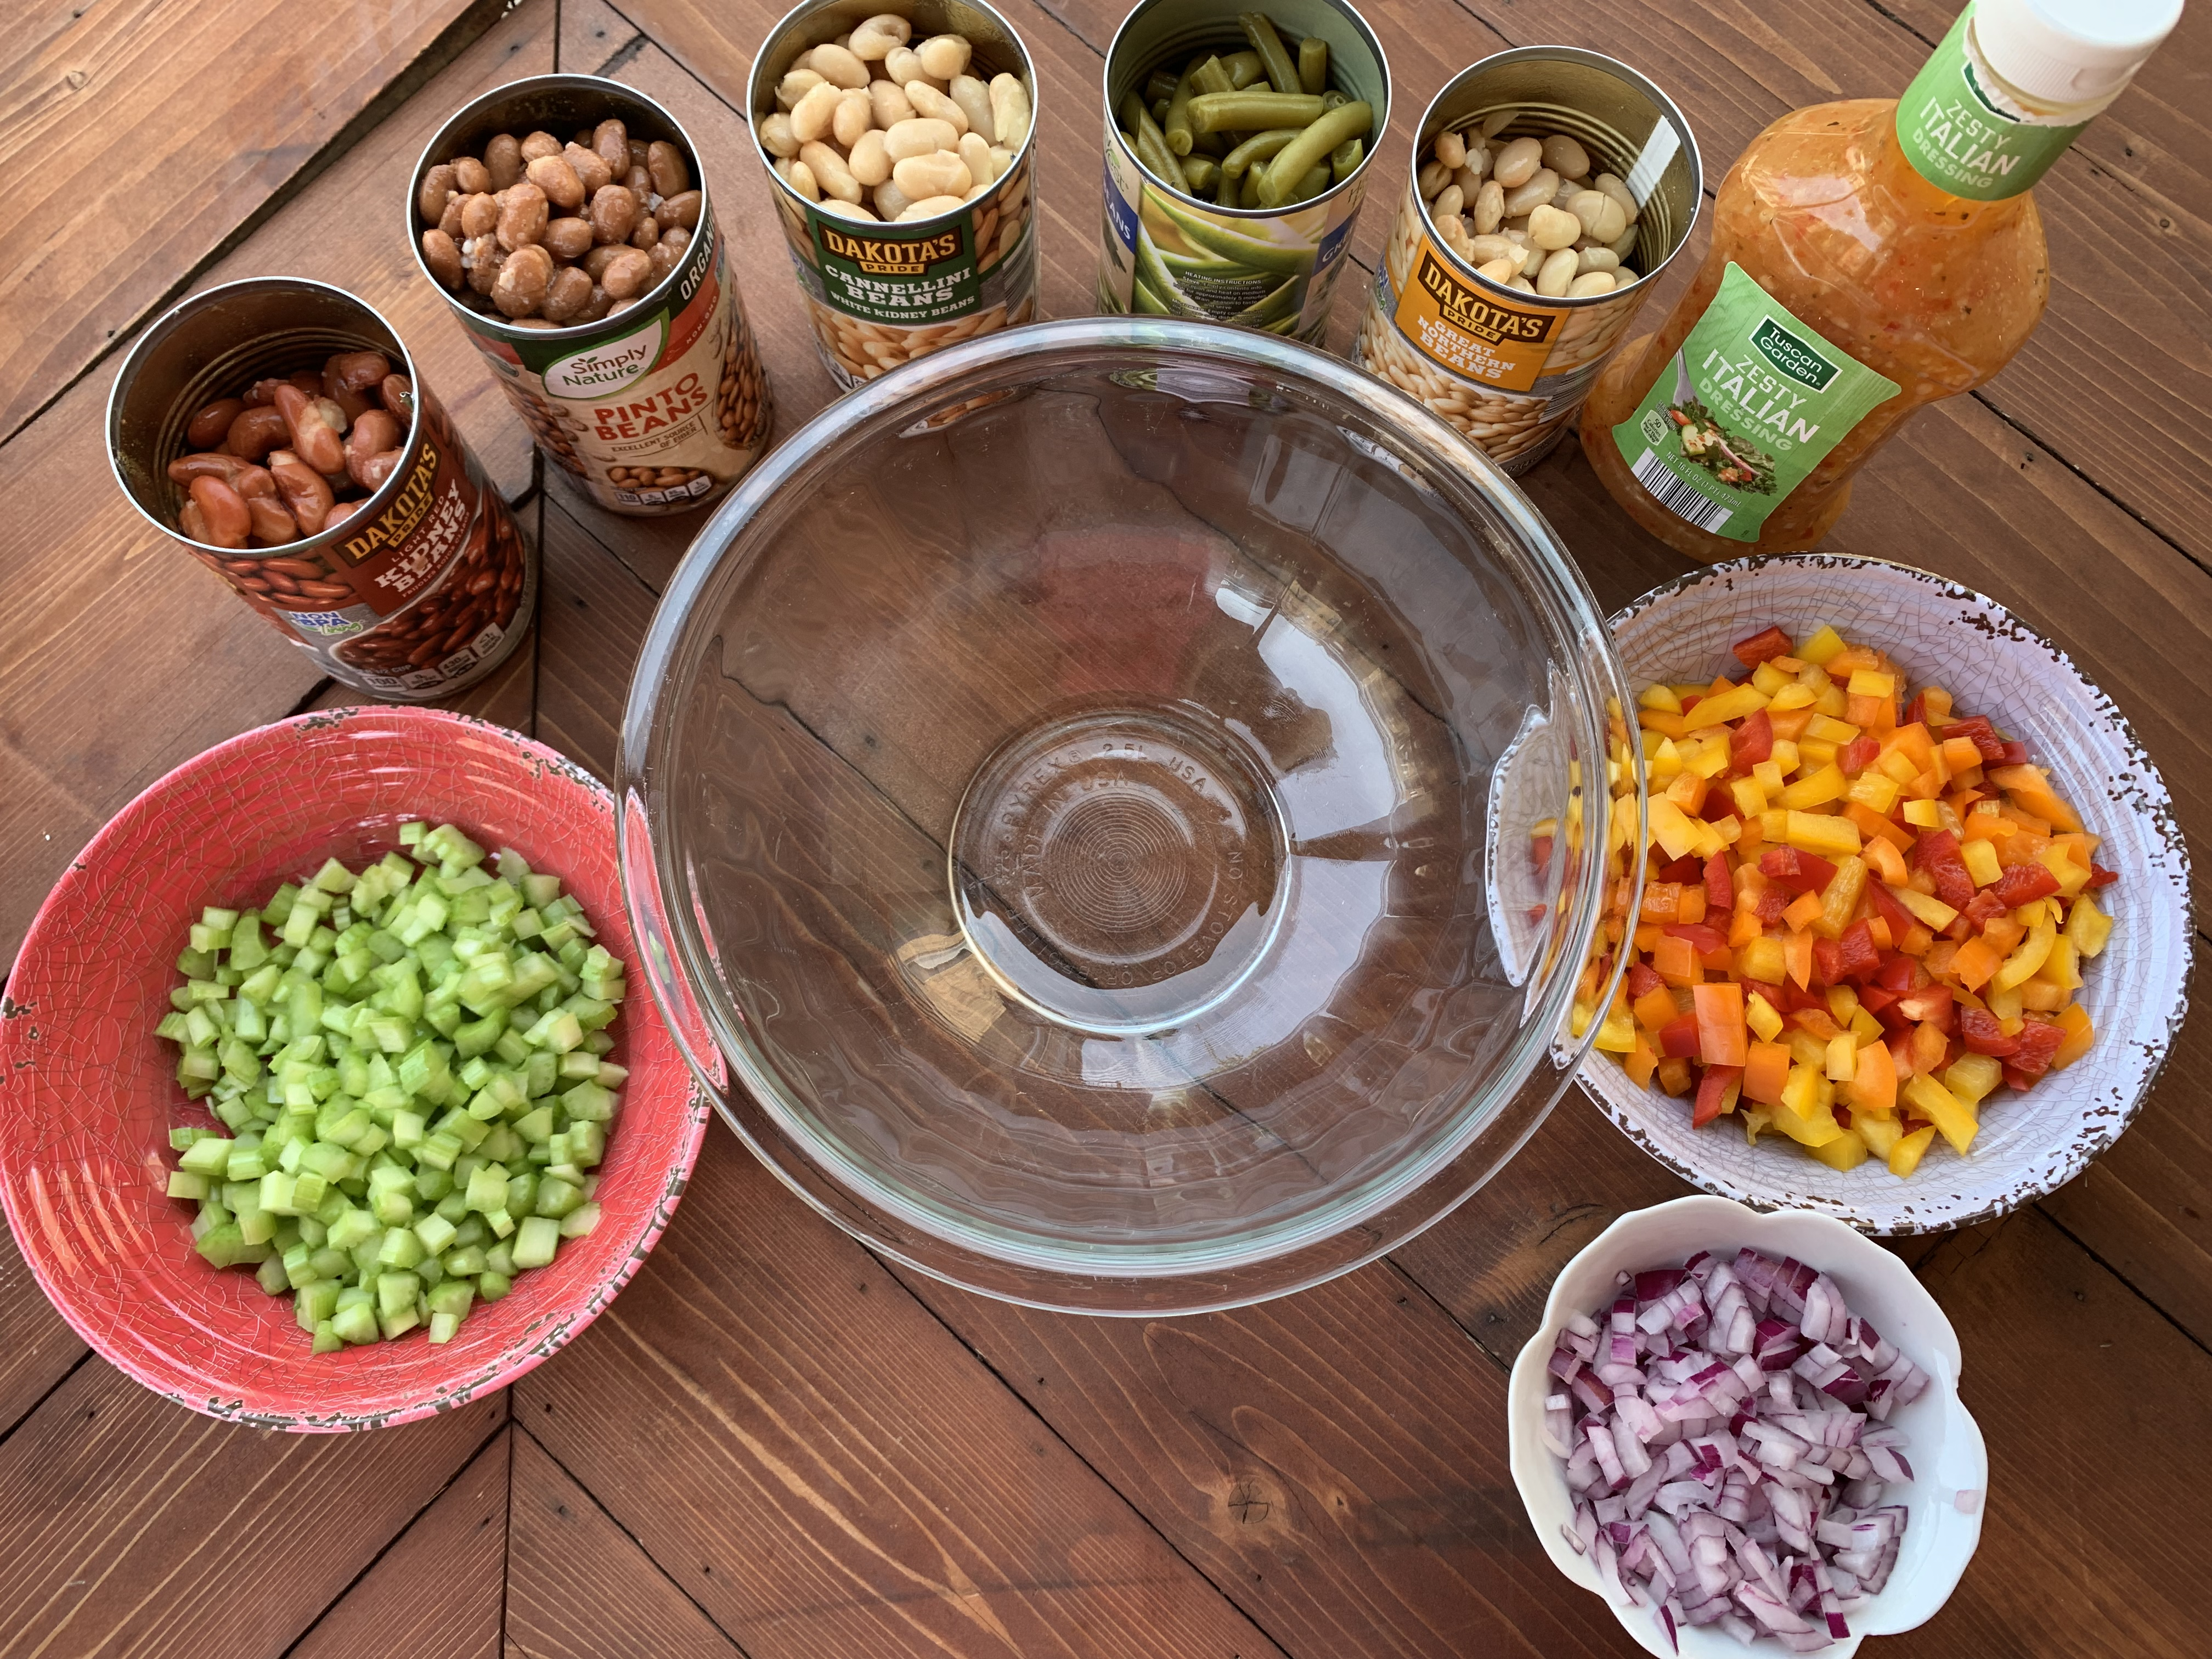 A picture of all the ingredients for the recipe